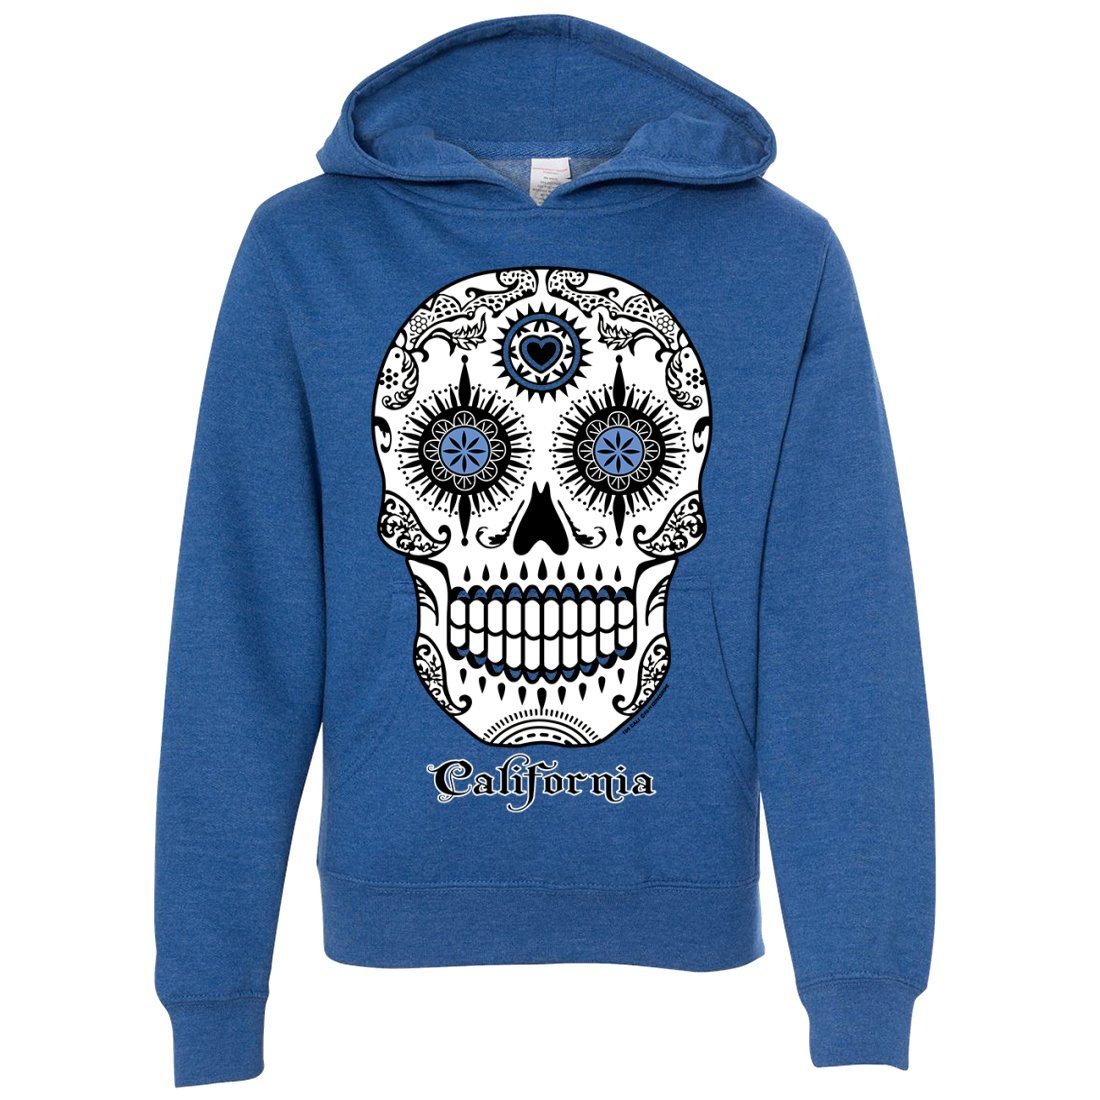 California Republic Sugar Skull Youth Sweatshirt Hoodie